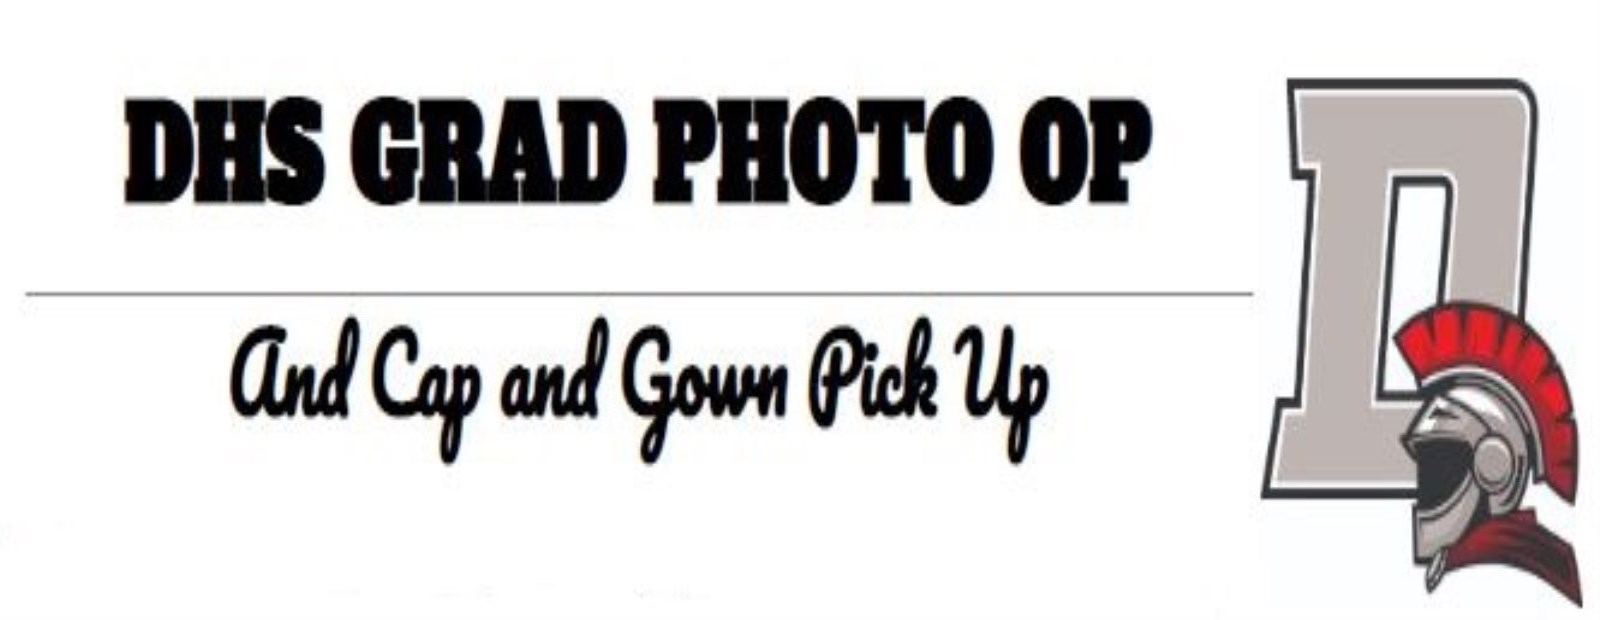 DHS GRAD PHOTO OP AND CAP AND GOWN PICK UP -Thursday July 2nd from 10:00-3:00